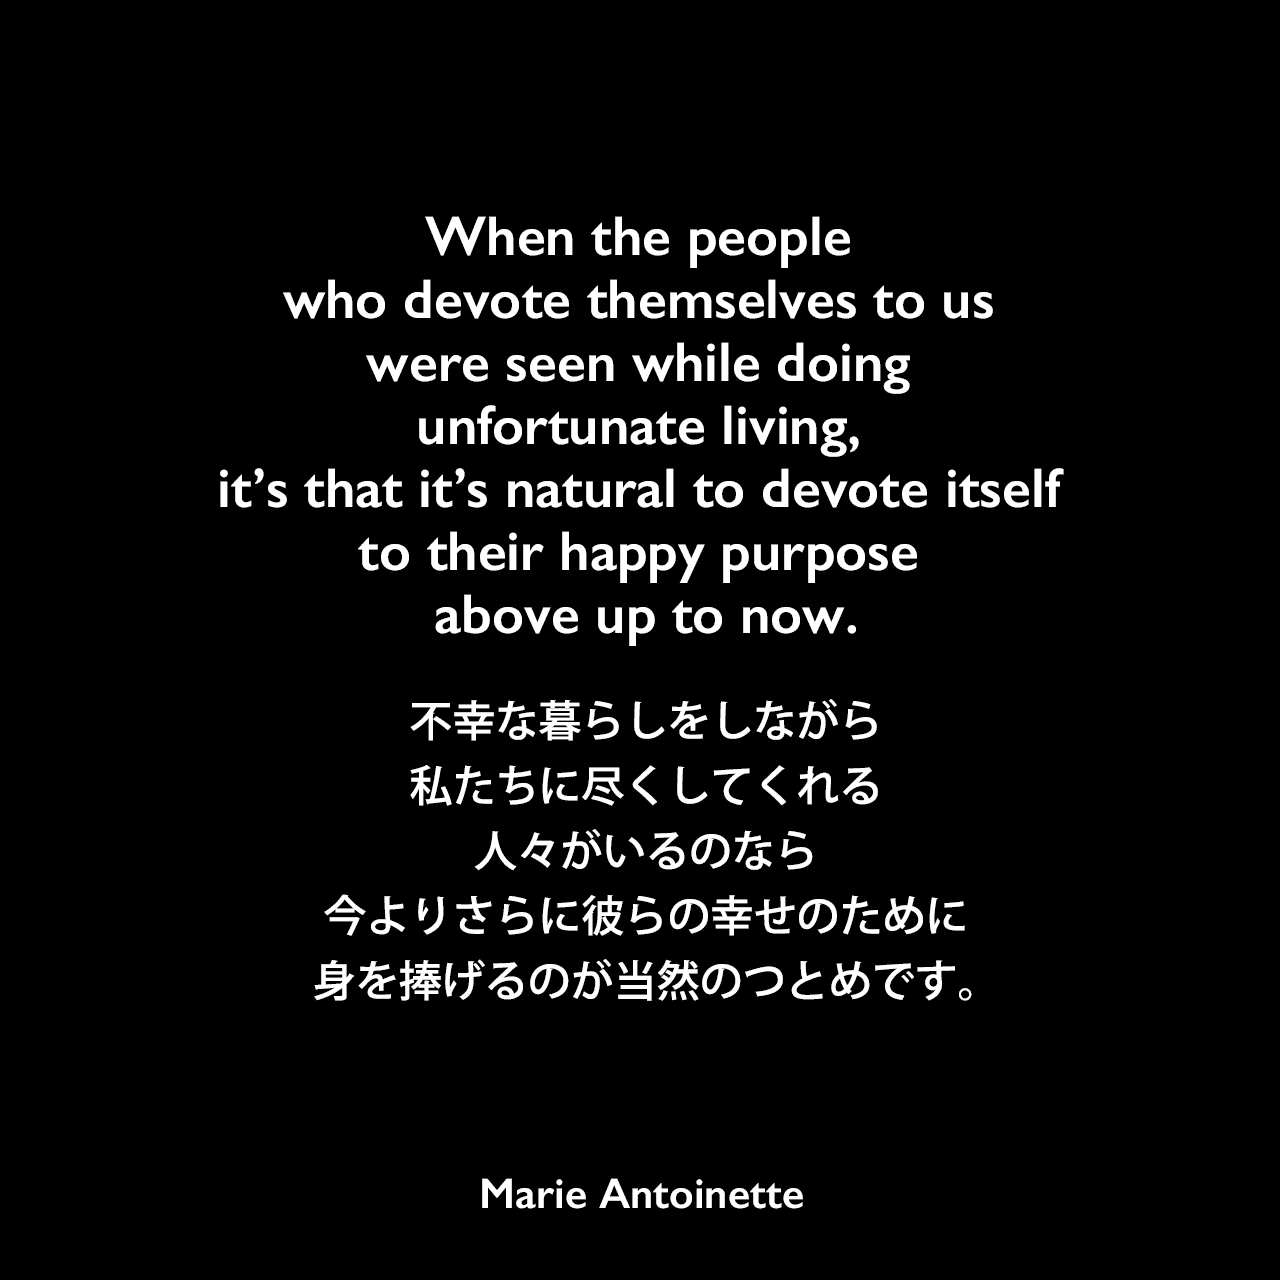 When the people who devote themselves to us were seen while doing unfortunate living, it's that it's natural to devote itself to their happy purpose above up to now.不幸な暮らしをしながら私たちに尽くしてくれる人々がいるのなら、今よりさらに彼らの幸せのために身を捧げるのが当然のつとめです。Marie Antoinette